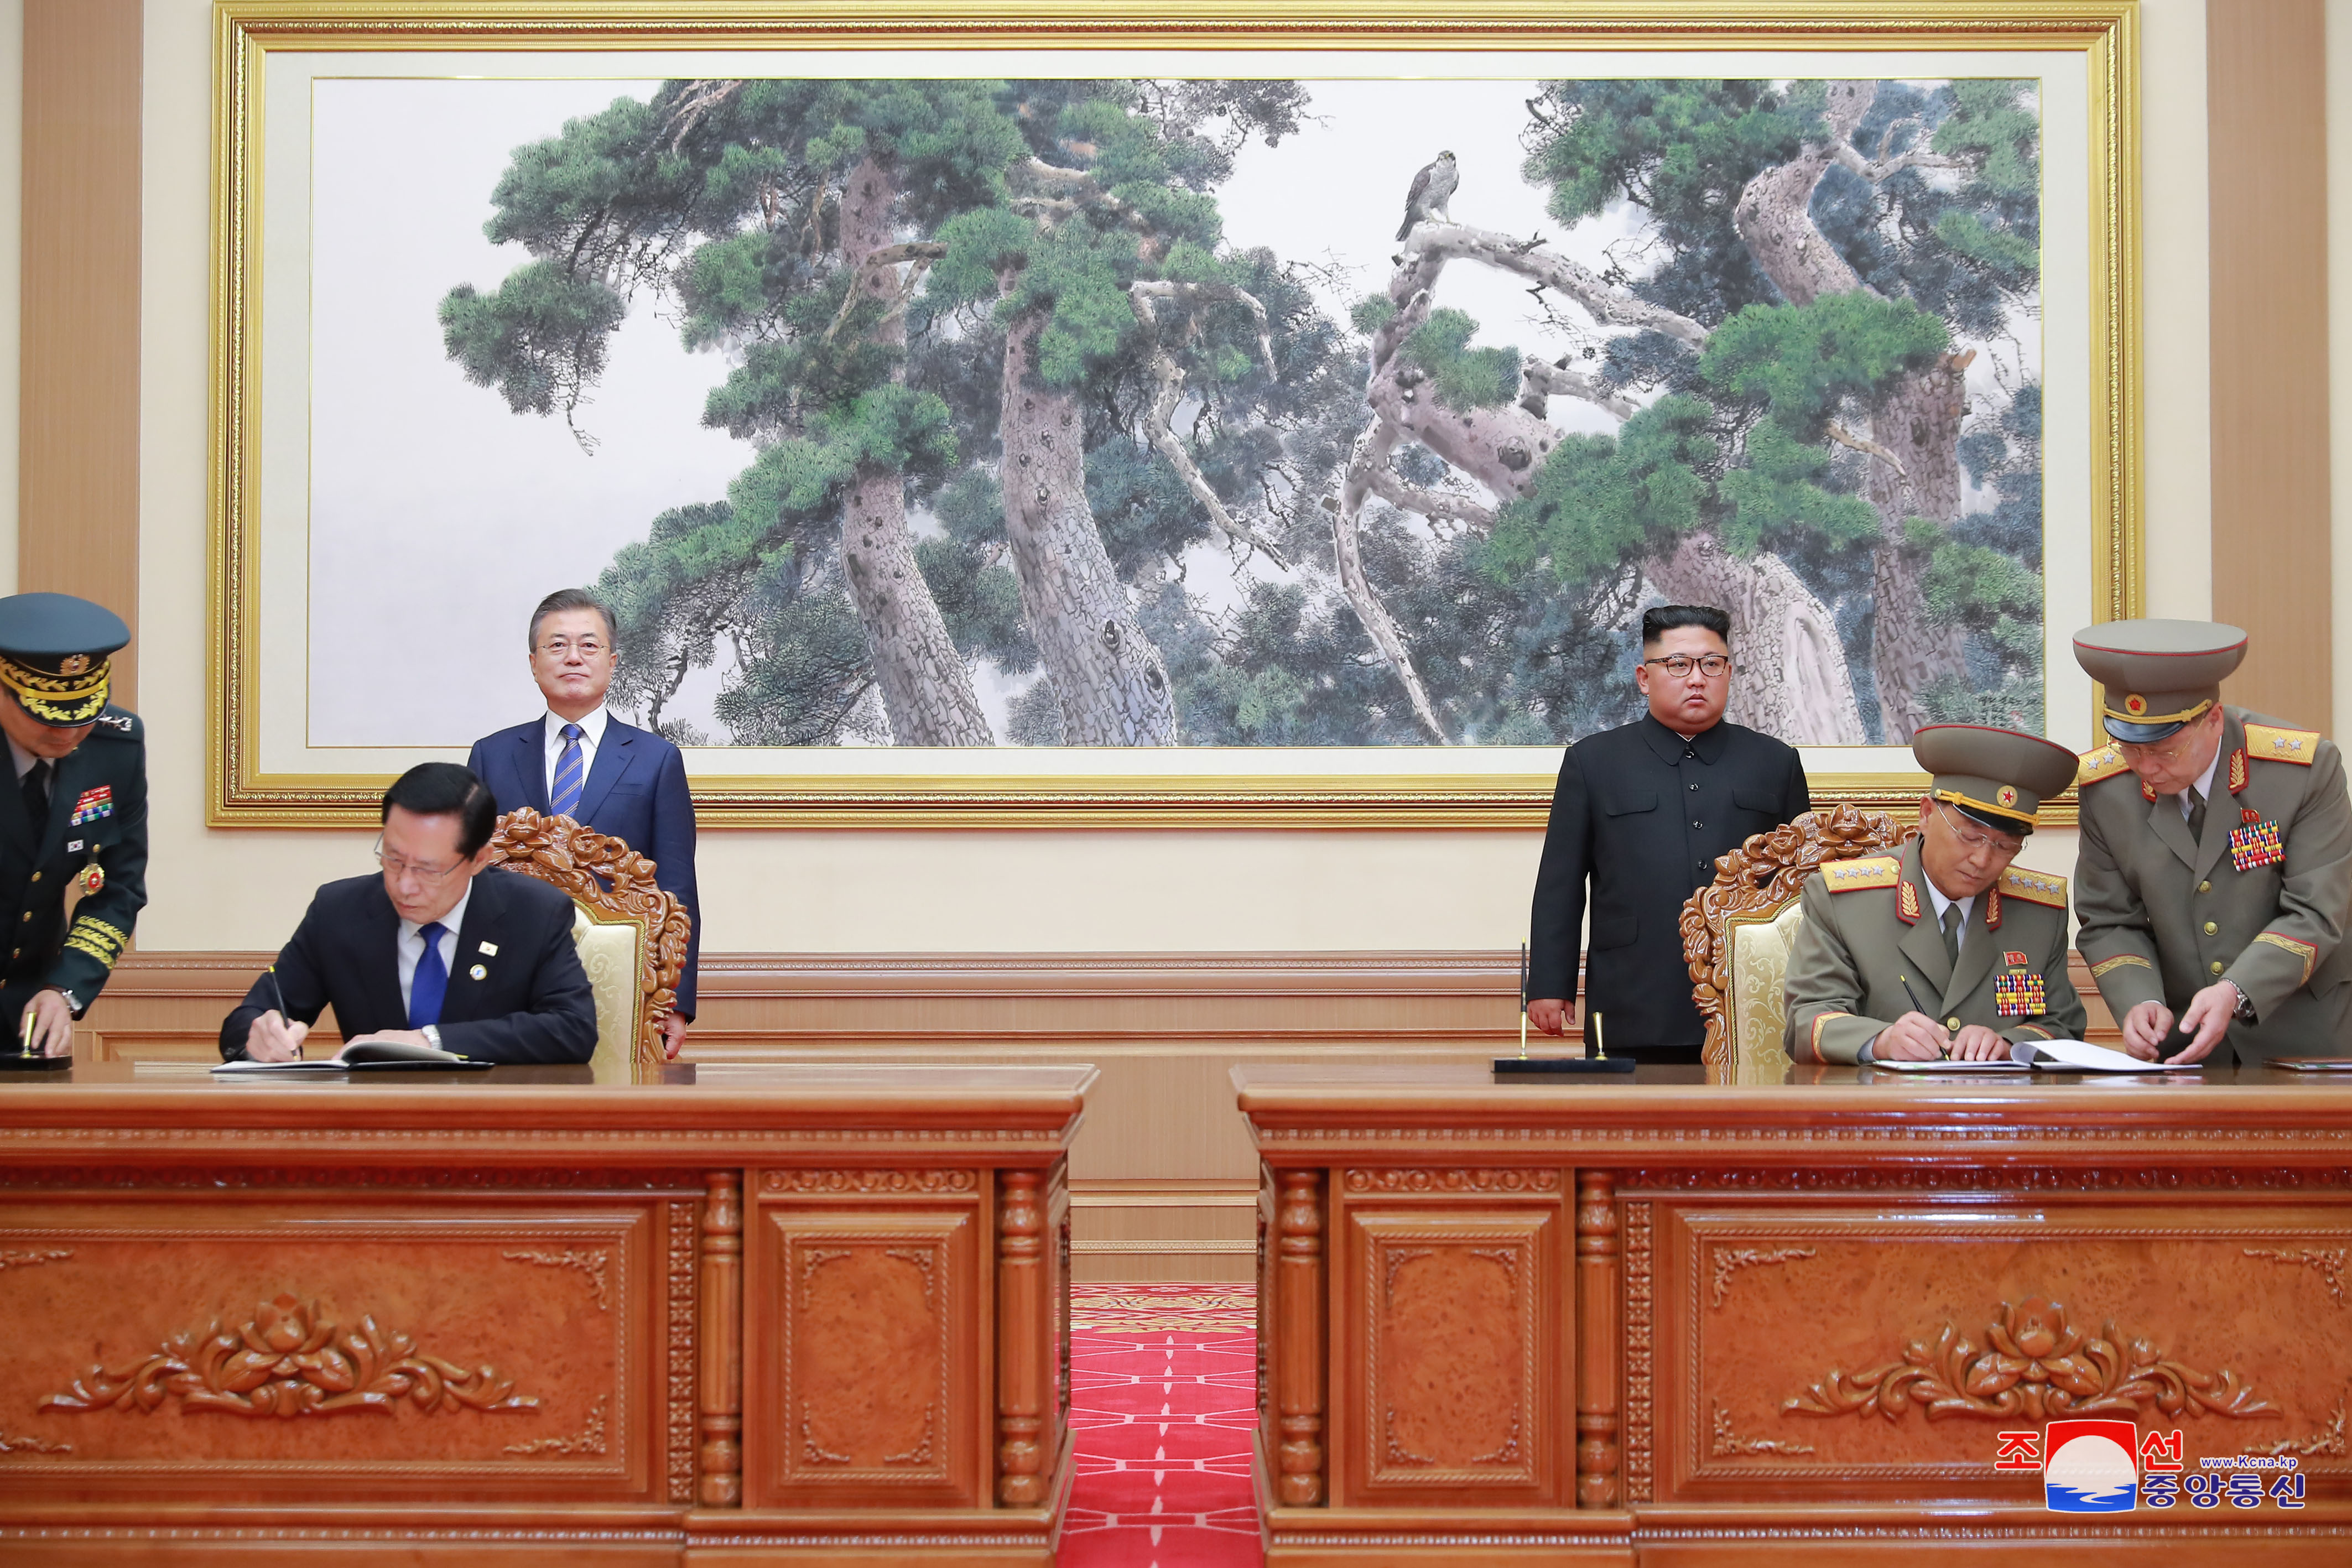 South Korean Defense Minister Song Young-moo and his North Korean counterpart No Kwang-chol sign a military agreement on September 19th, 2018 in Pyongyang. <Photo: Joint Press Corps>